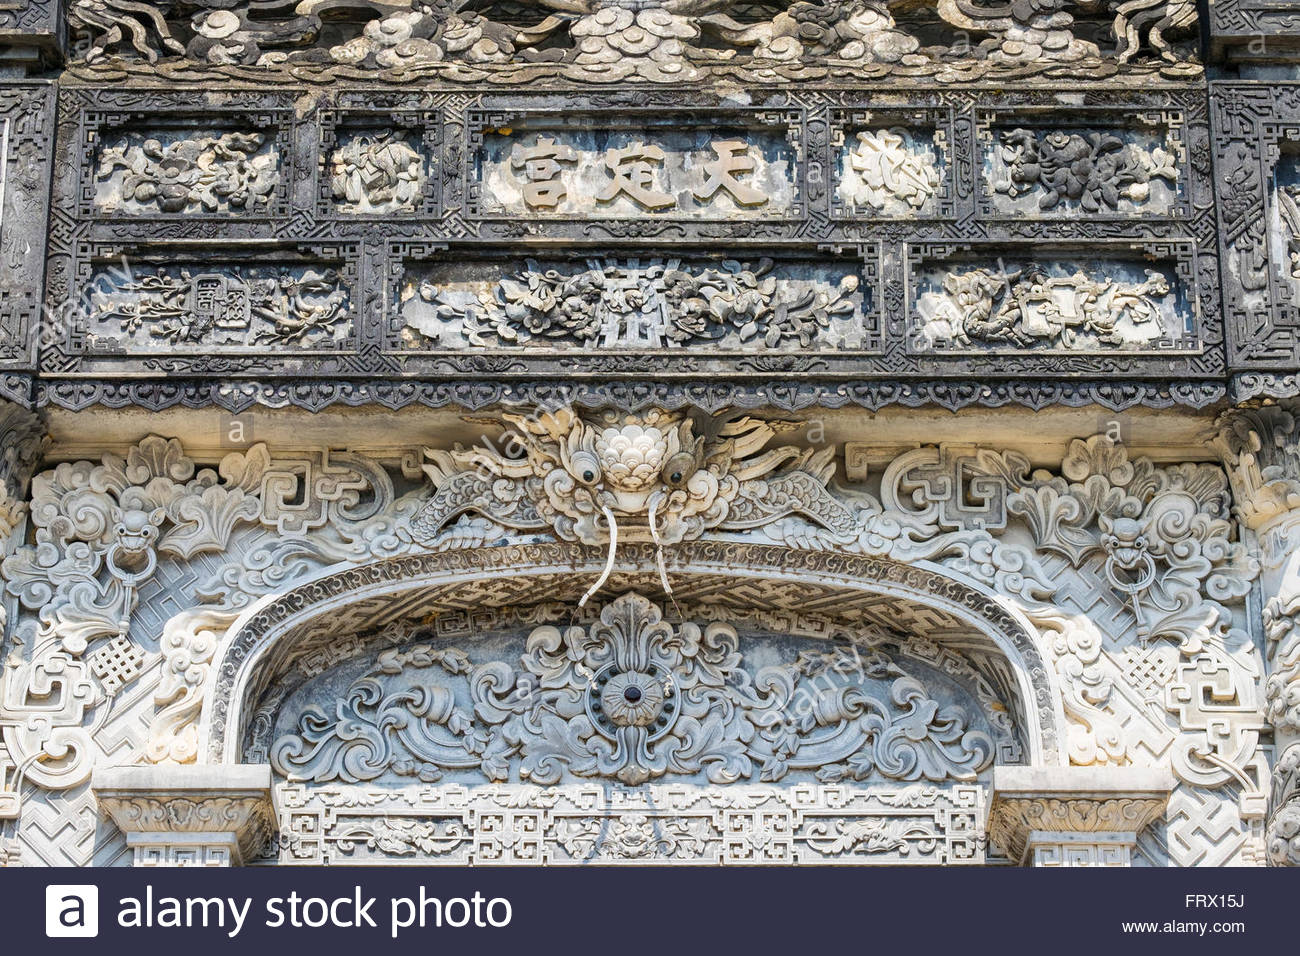 Ornate carvings on Tomb of Khai Dinh (Lang Khai Dinh), Huong Thuy District, Thua Thien-Hue Province, Vietnam - Stock Image